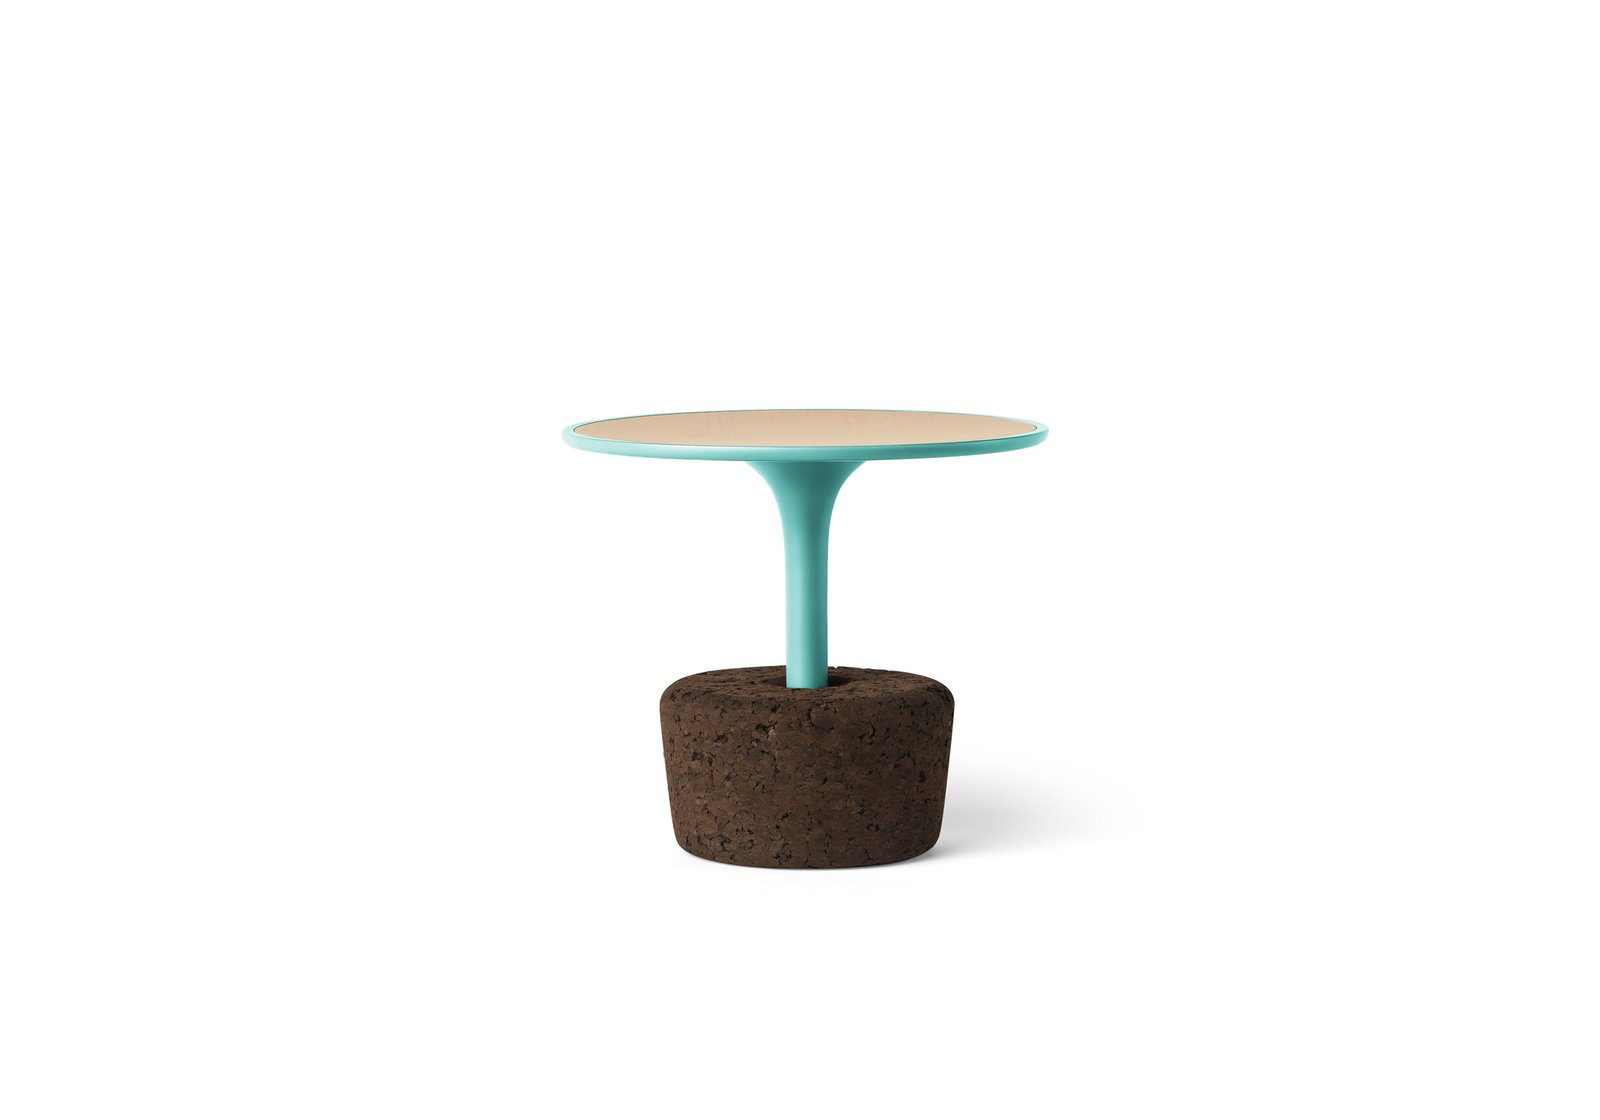 "Flora Small Low  FLORA is a set of coffee tables that refers to the plants we offer to the ones we love, so there is a similarity between taking care of plants and taking care of the objects. These versatile tables combine natural materials, with four sizes and six different colored frame finishes and may be used separately or together.  Size  Ø40 x H35 cm / Ø15,7'' x H14''.  Weight  4,3 kg / 9,5 lbs.  Search ""압구정출장안마【Ø1Ø↔3Ø67↔661Ø】⊀후불제⊁압구정출장마사지 압구정콜걸출장안마후기【20대맞춤】압구정콜걸출장마사지 압구정출장샵강추 압구정모텔출장美人압구정출장맛사지후기∠압구정출장안마추천후기 압구정출장여대생"""